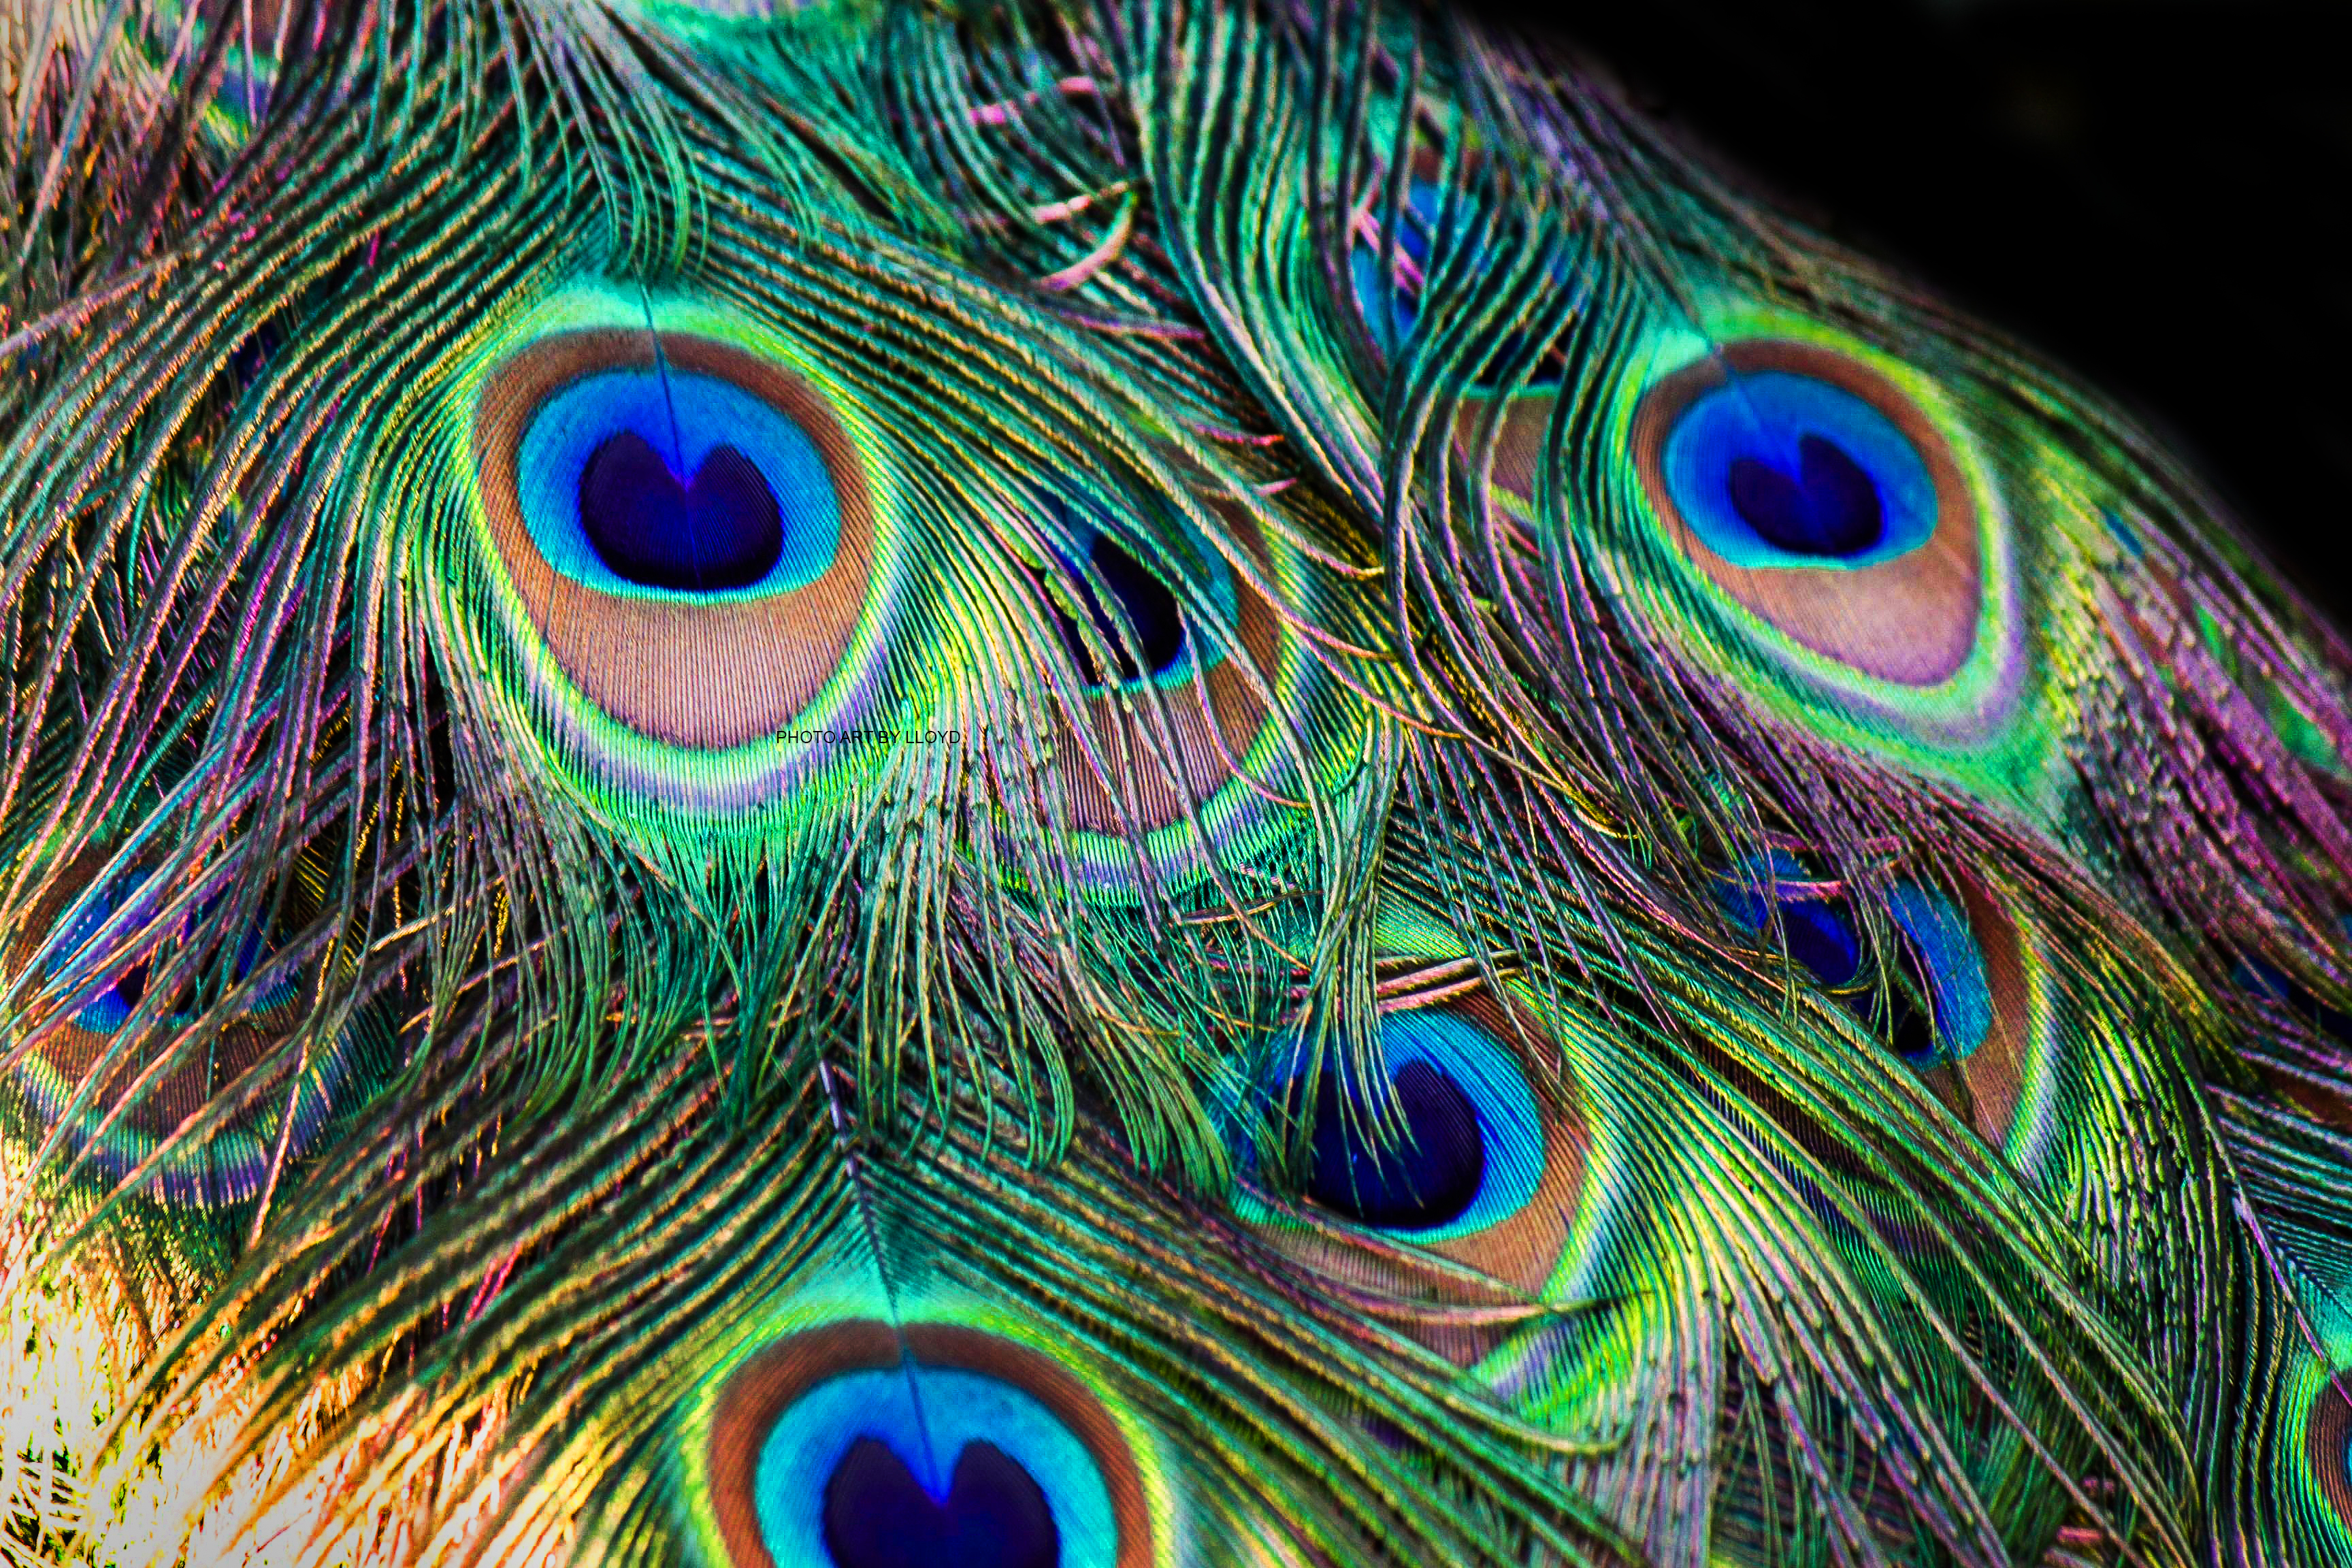 beautiful peacock feathers images